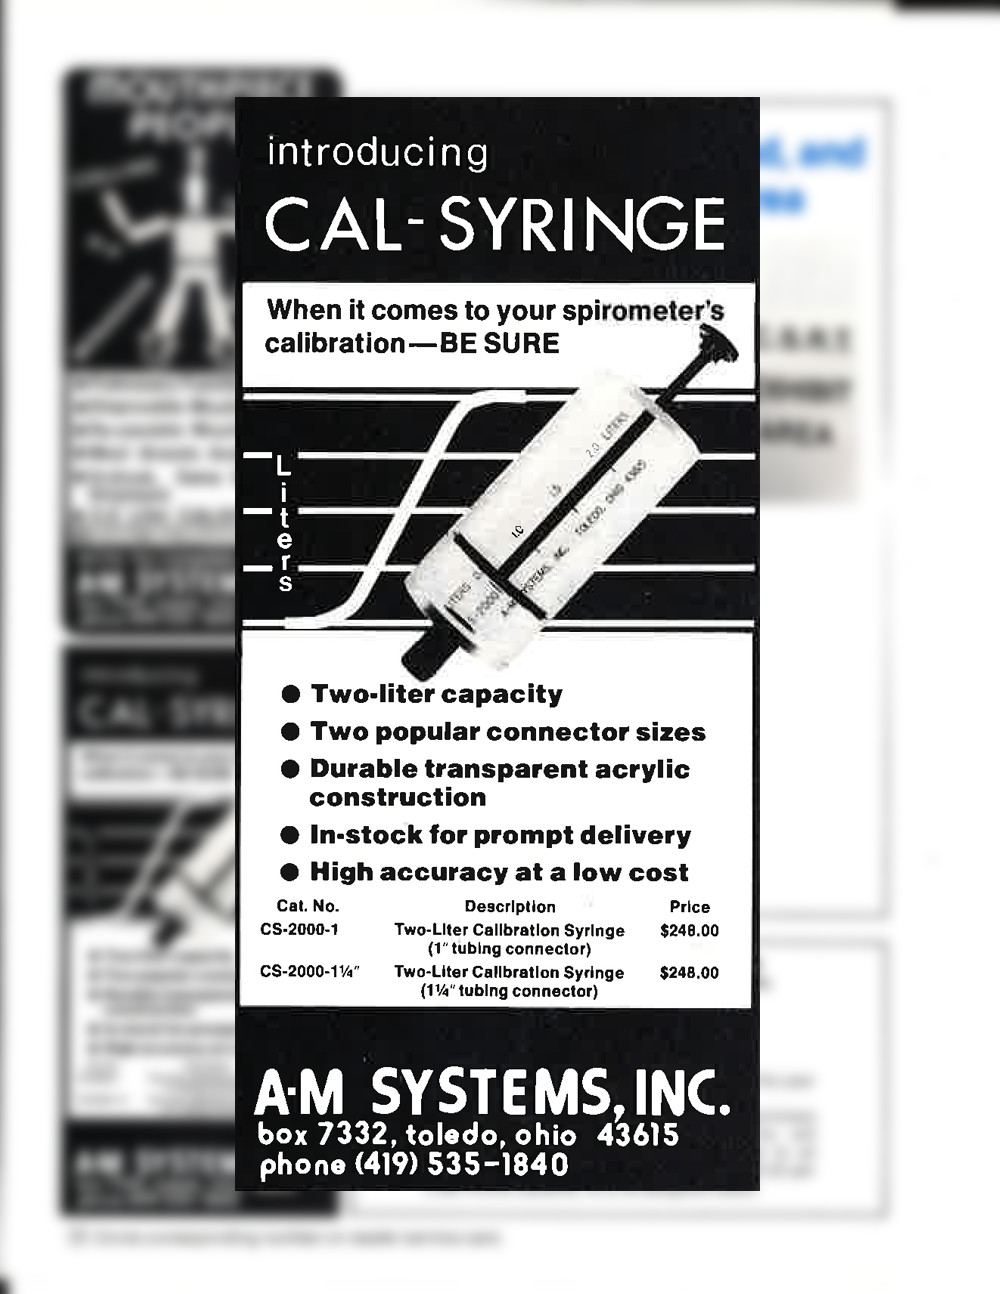 An ad for a calibration syringe we published in the May/June issue of the now defunct Medical Electronics Equipment & News.)